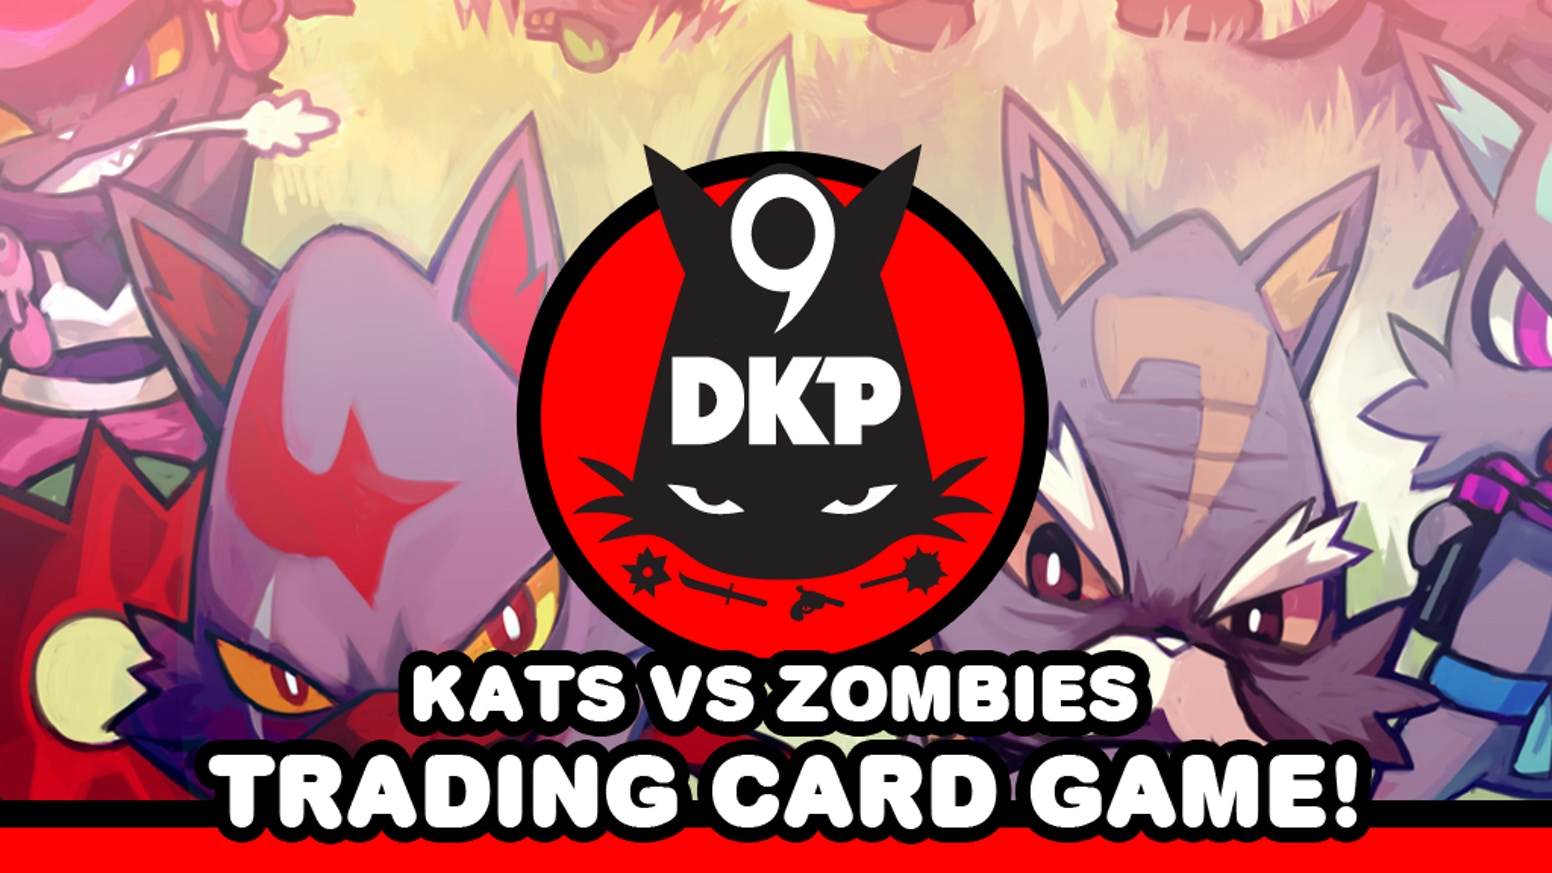 KATS vs ZOMBIES trading card game by esctoy.com. Featuring the artwork of HATO MOA, ERICK SCARECROW & OTHERS!